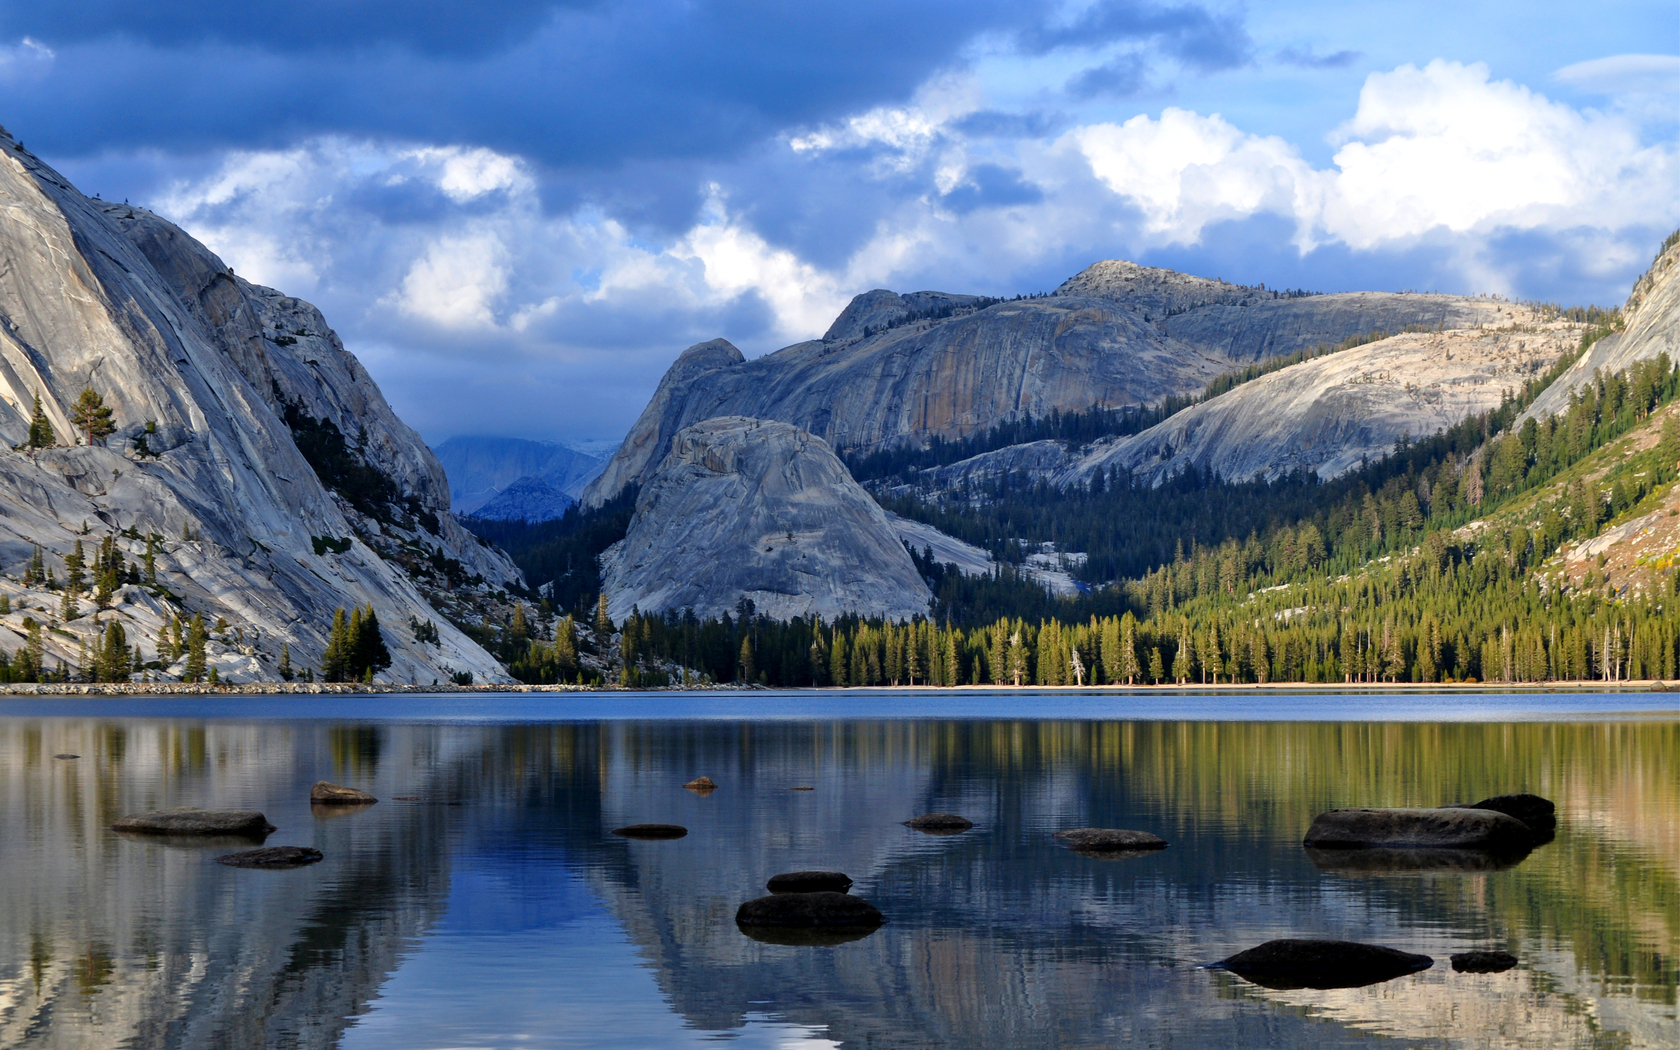 32944 download wallpaper Landscape, Mountains, Lakes screensavers and pictures for free